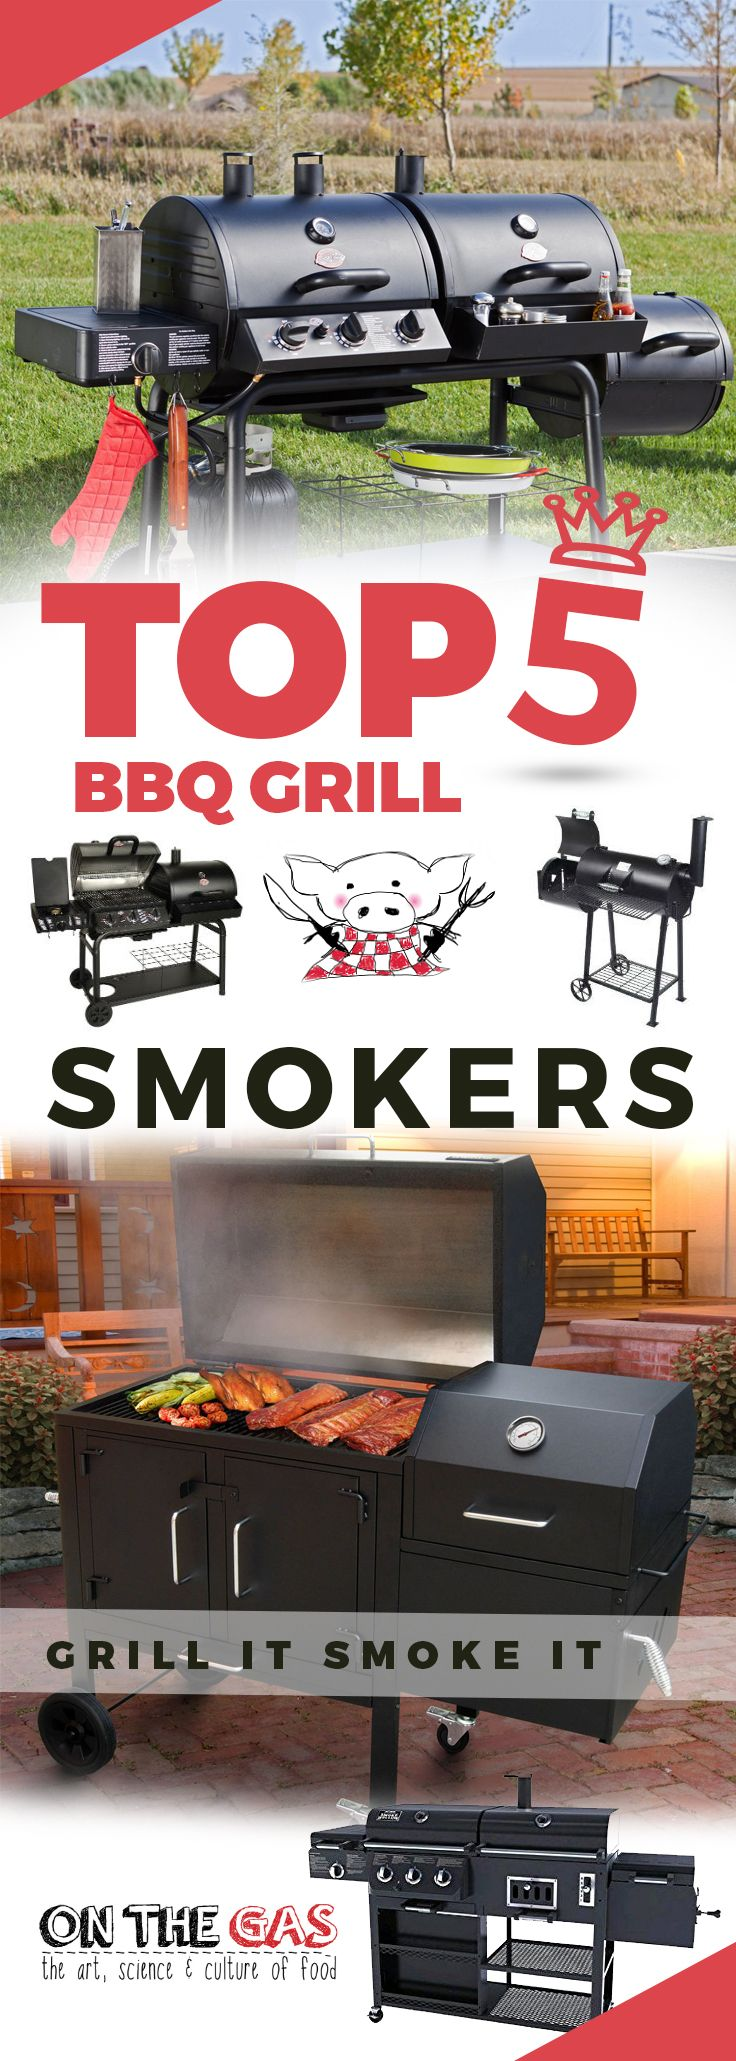 419 best bbq outdoor images on pinterest barbecue grill